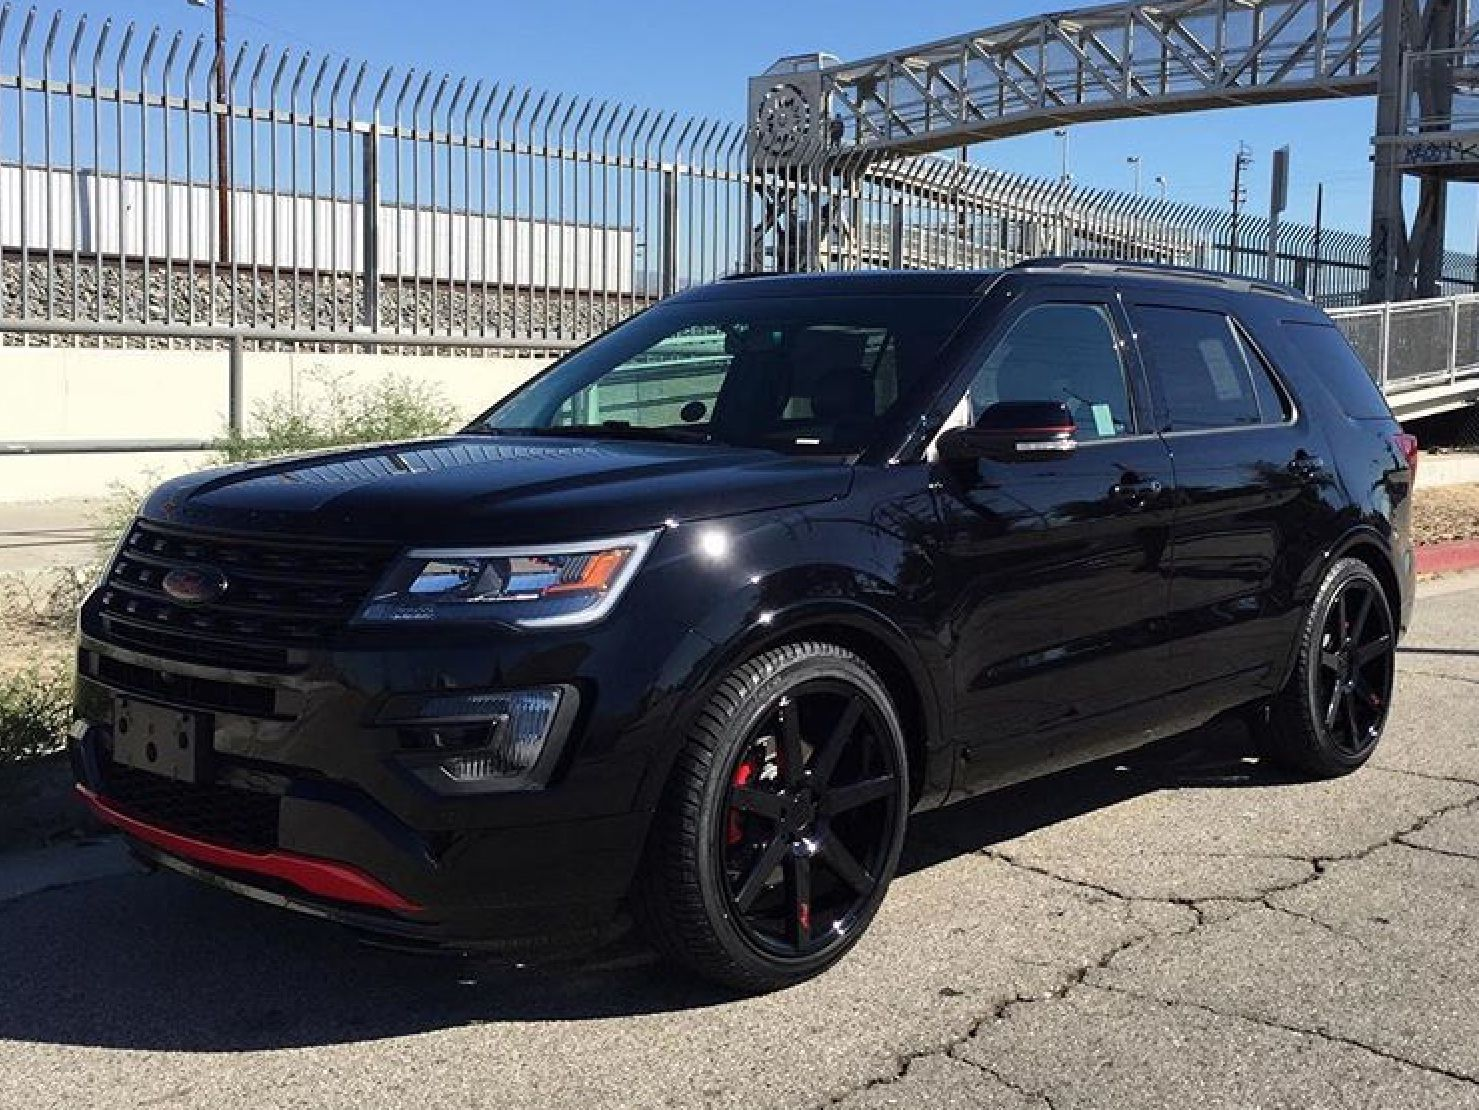 Pin By Hector Garcia On Ford Explorer Club 187 Ford Explorer Ford Explorer Sport Luxury Suv